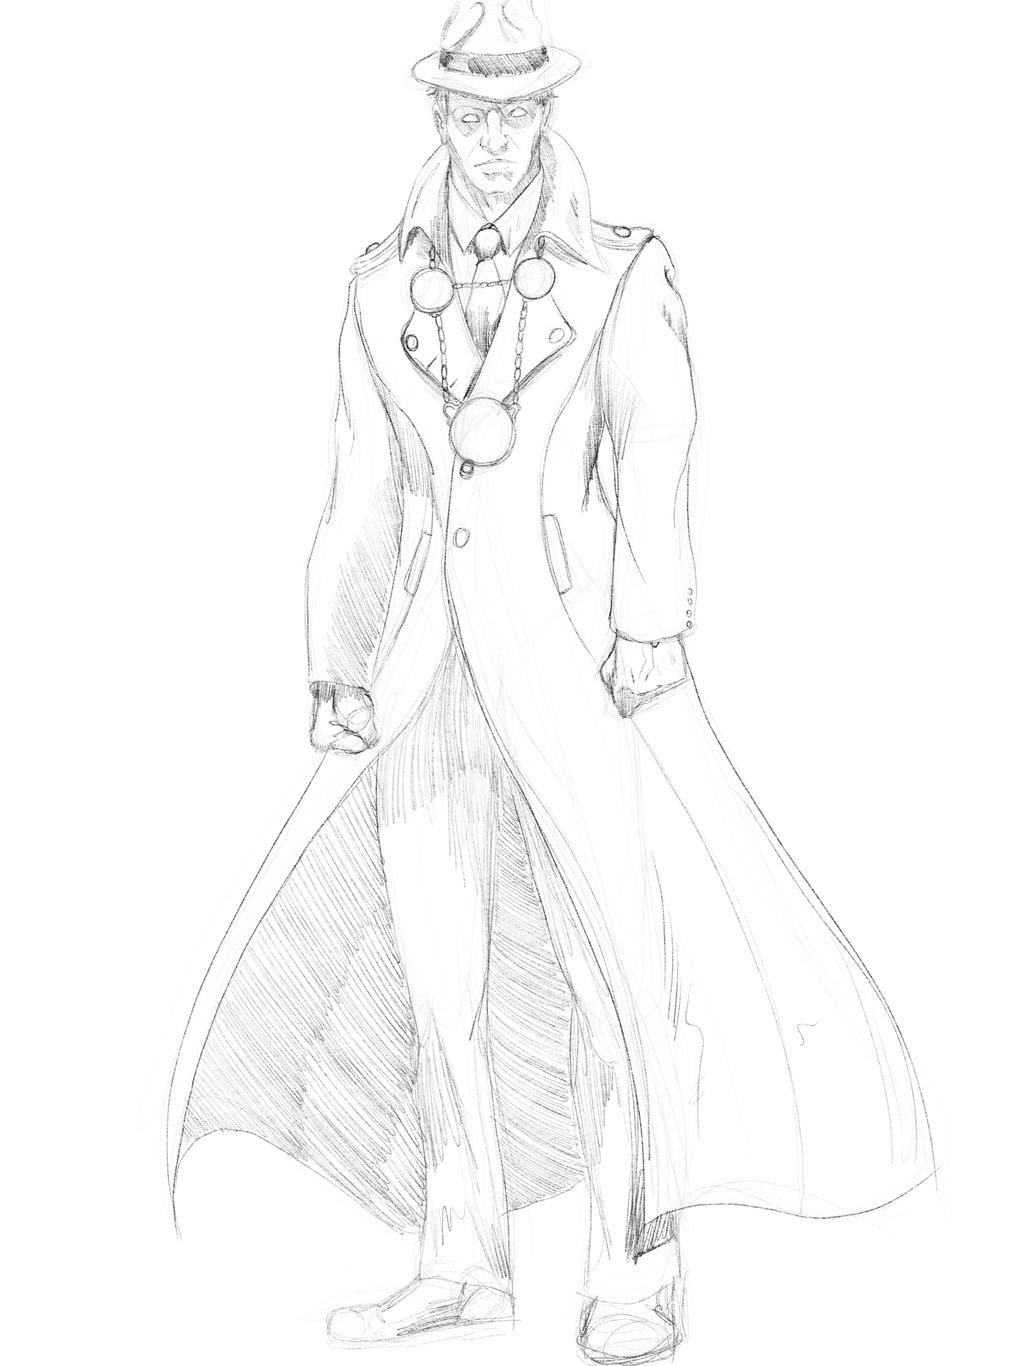 phantom stranger - sketch by jksketch